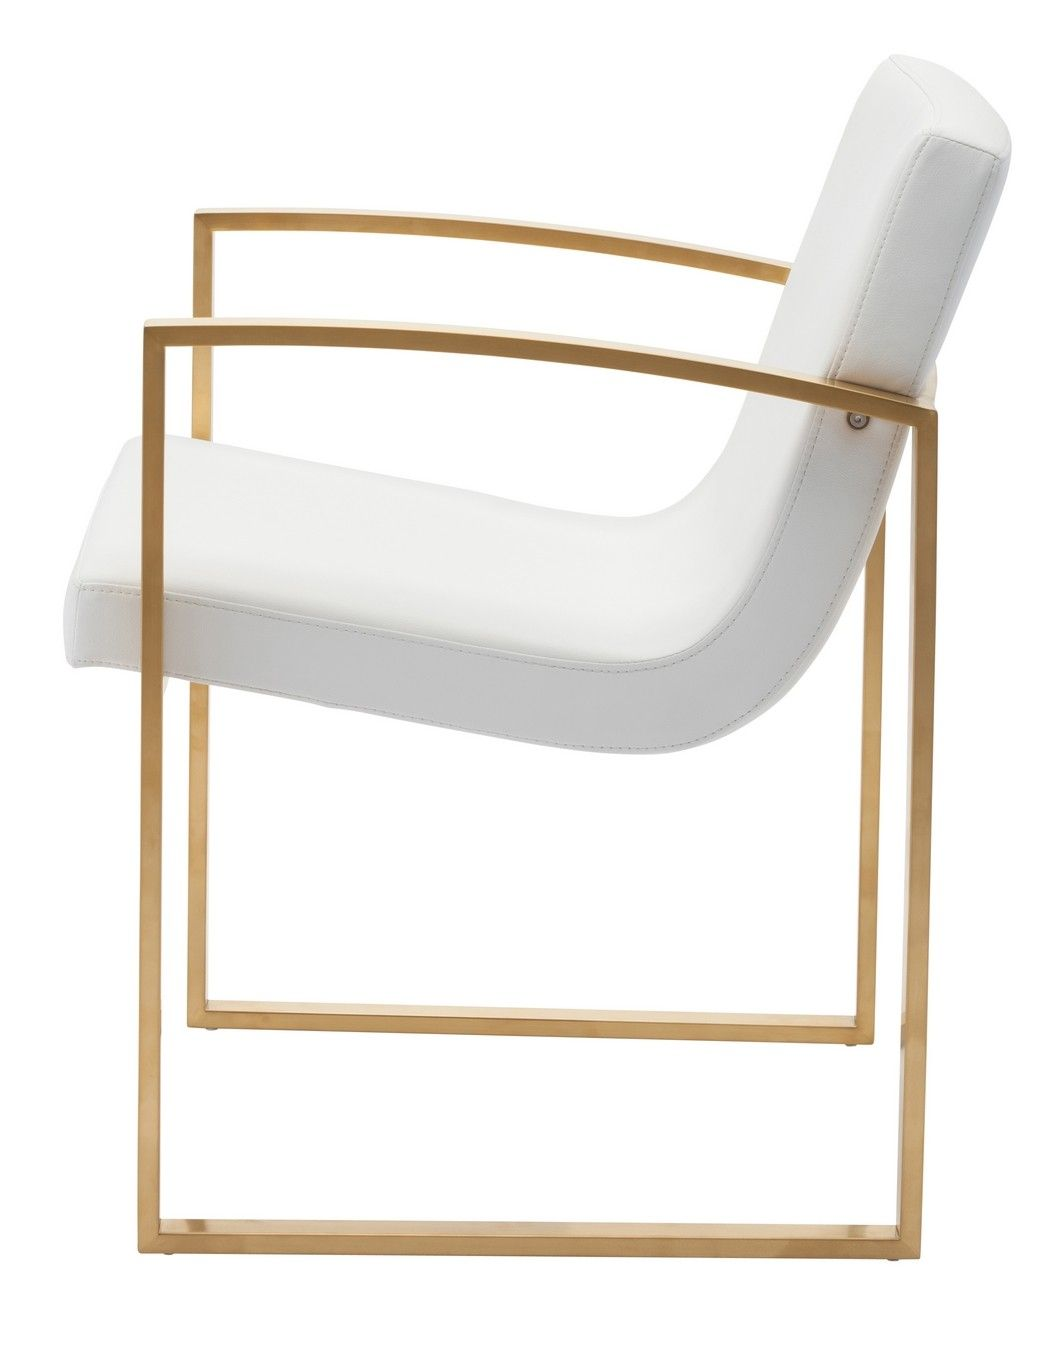 Clara Dining Chair In White By Nuevo Living | HGTB324 | Nuevo Living